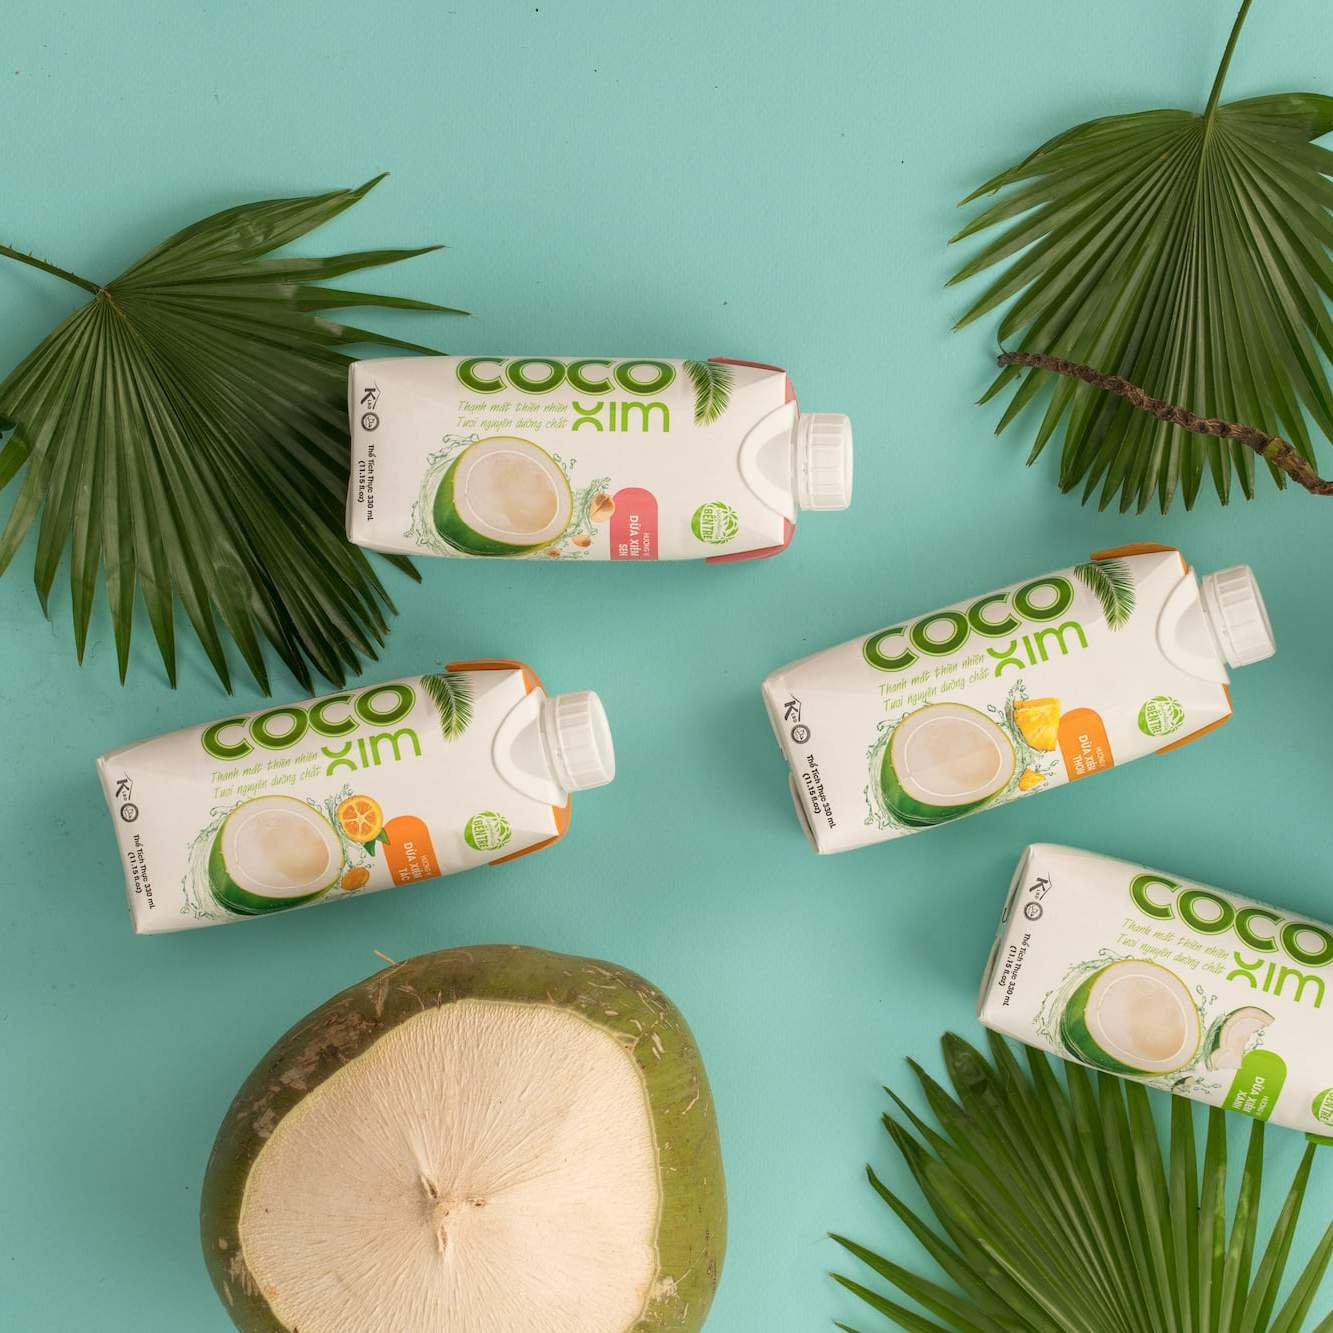 A Brand's Story: Cocoxim — Paving a New Path For Ben Tre Coconut Farmers